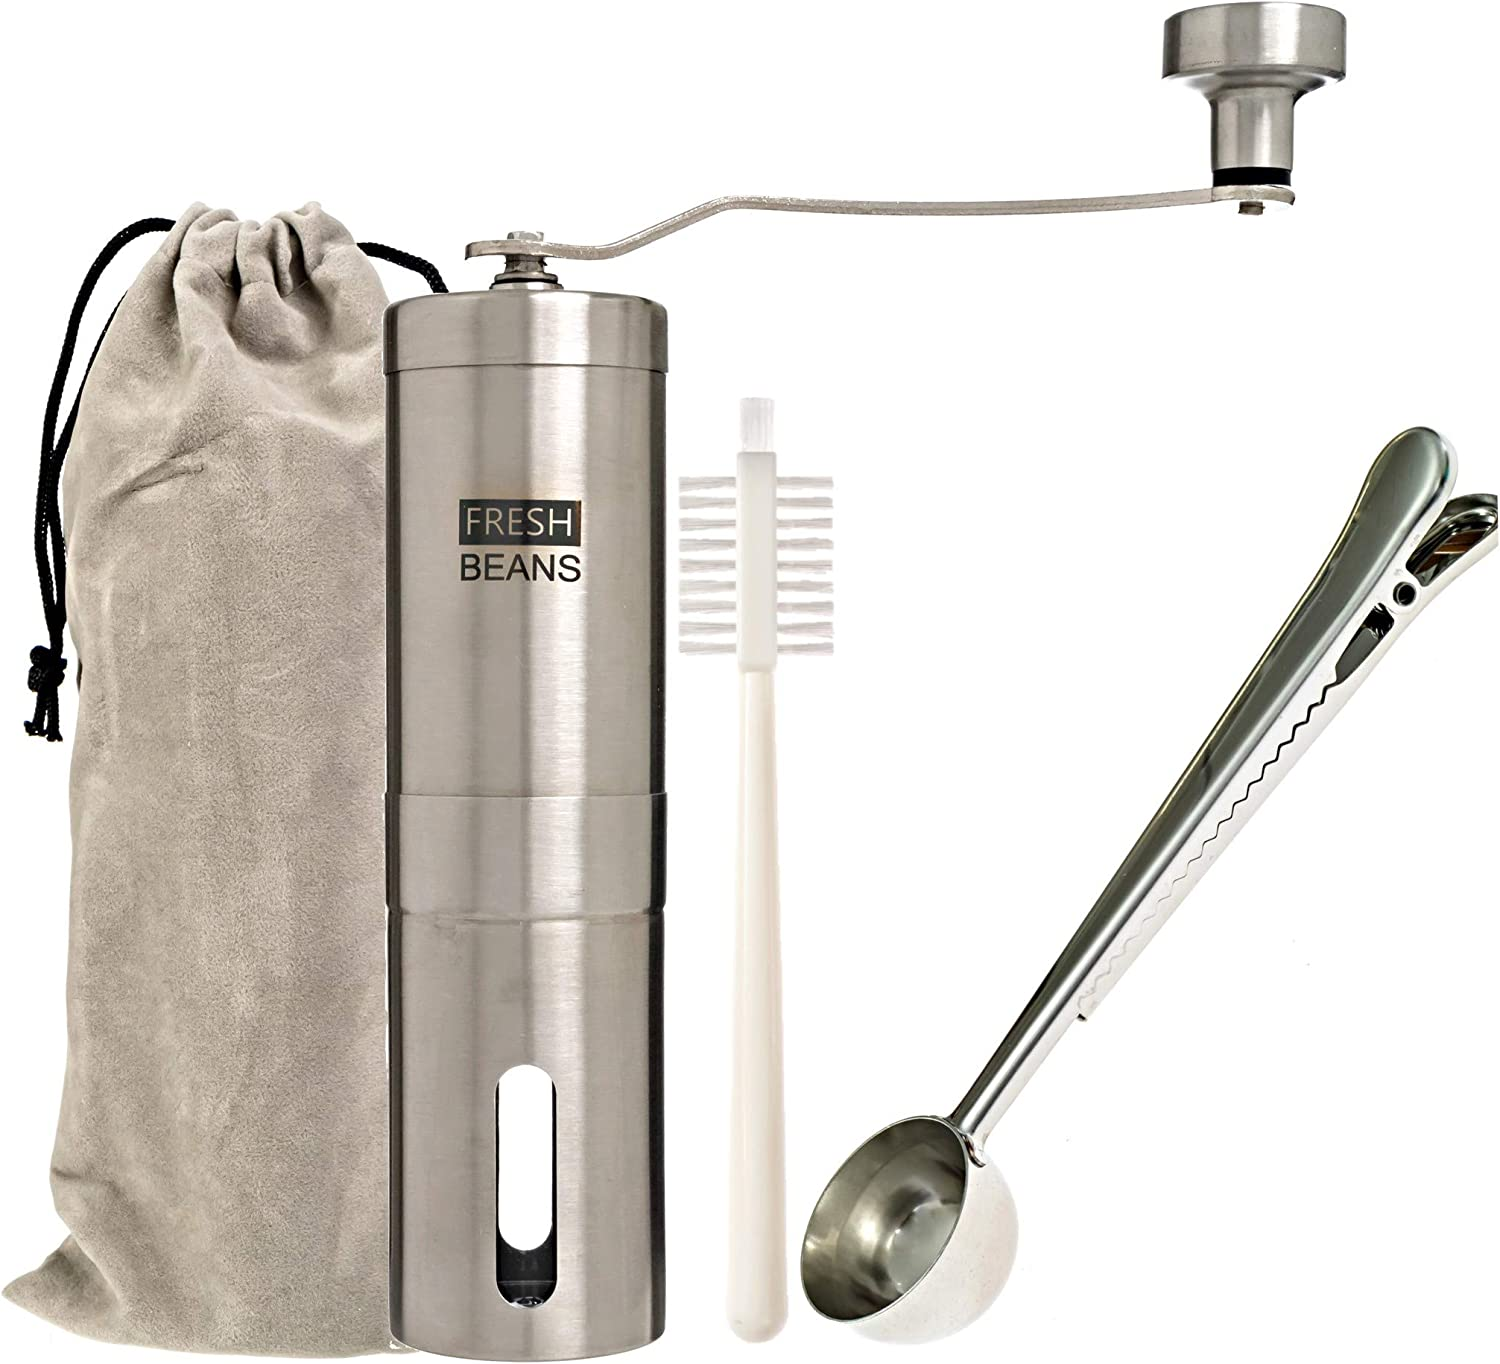 FRESH BEANS - FULL KIT Stainless New Free Shipping Steel Grinder Coffee Manual Outlet SALE